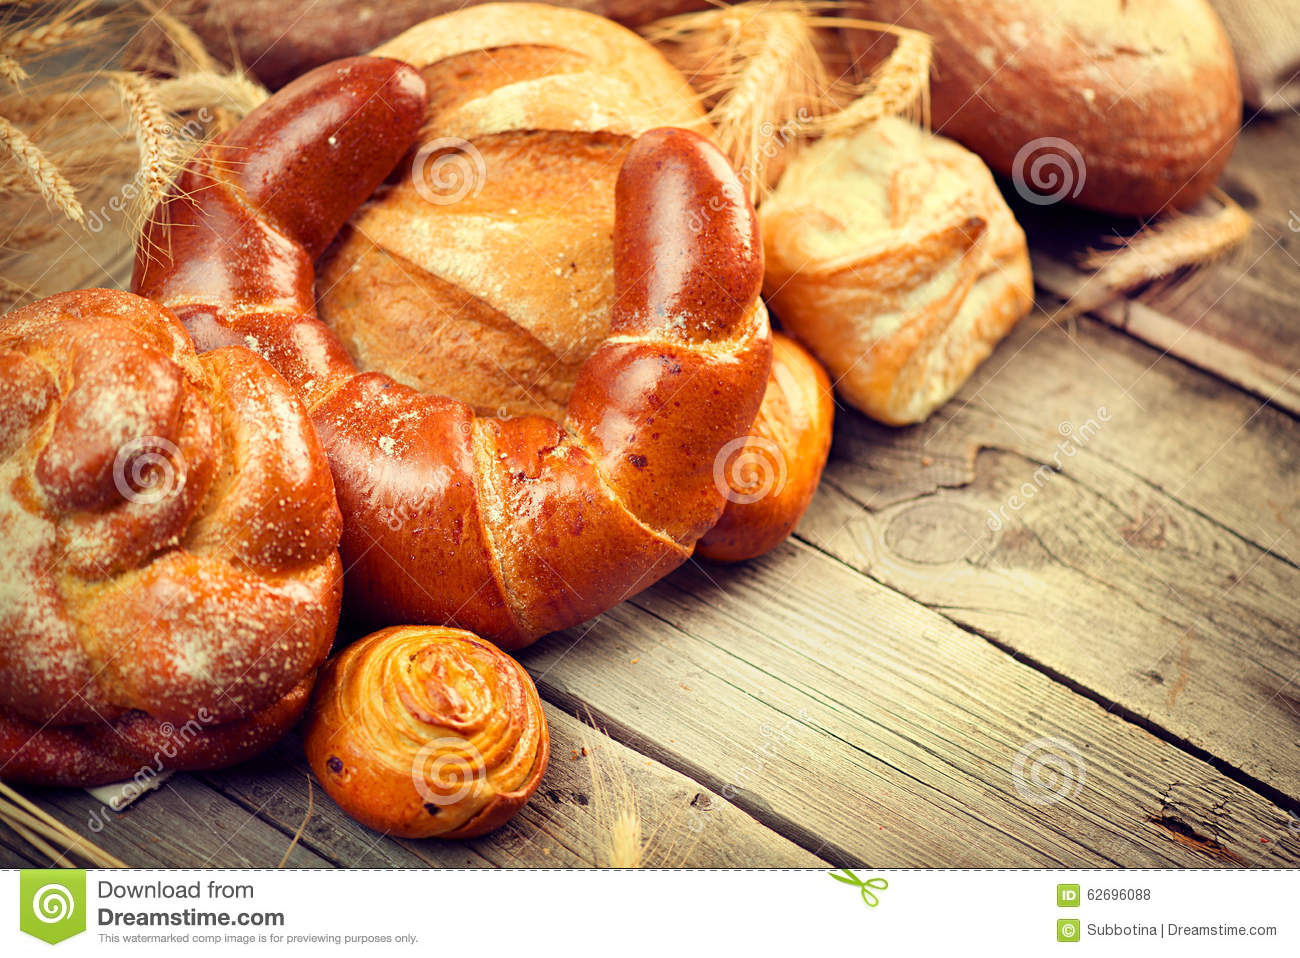 How To Start A Bread Bakery Business In Nigeria